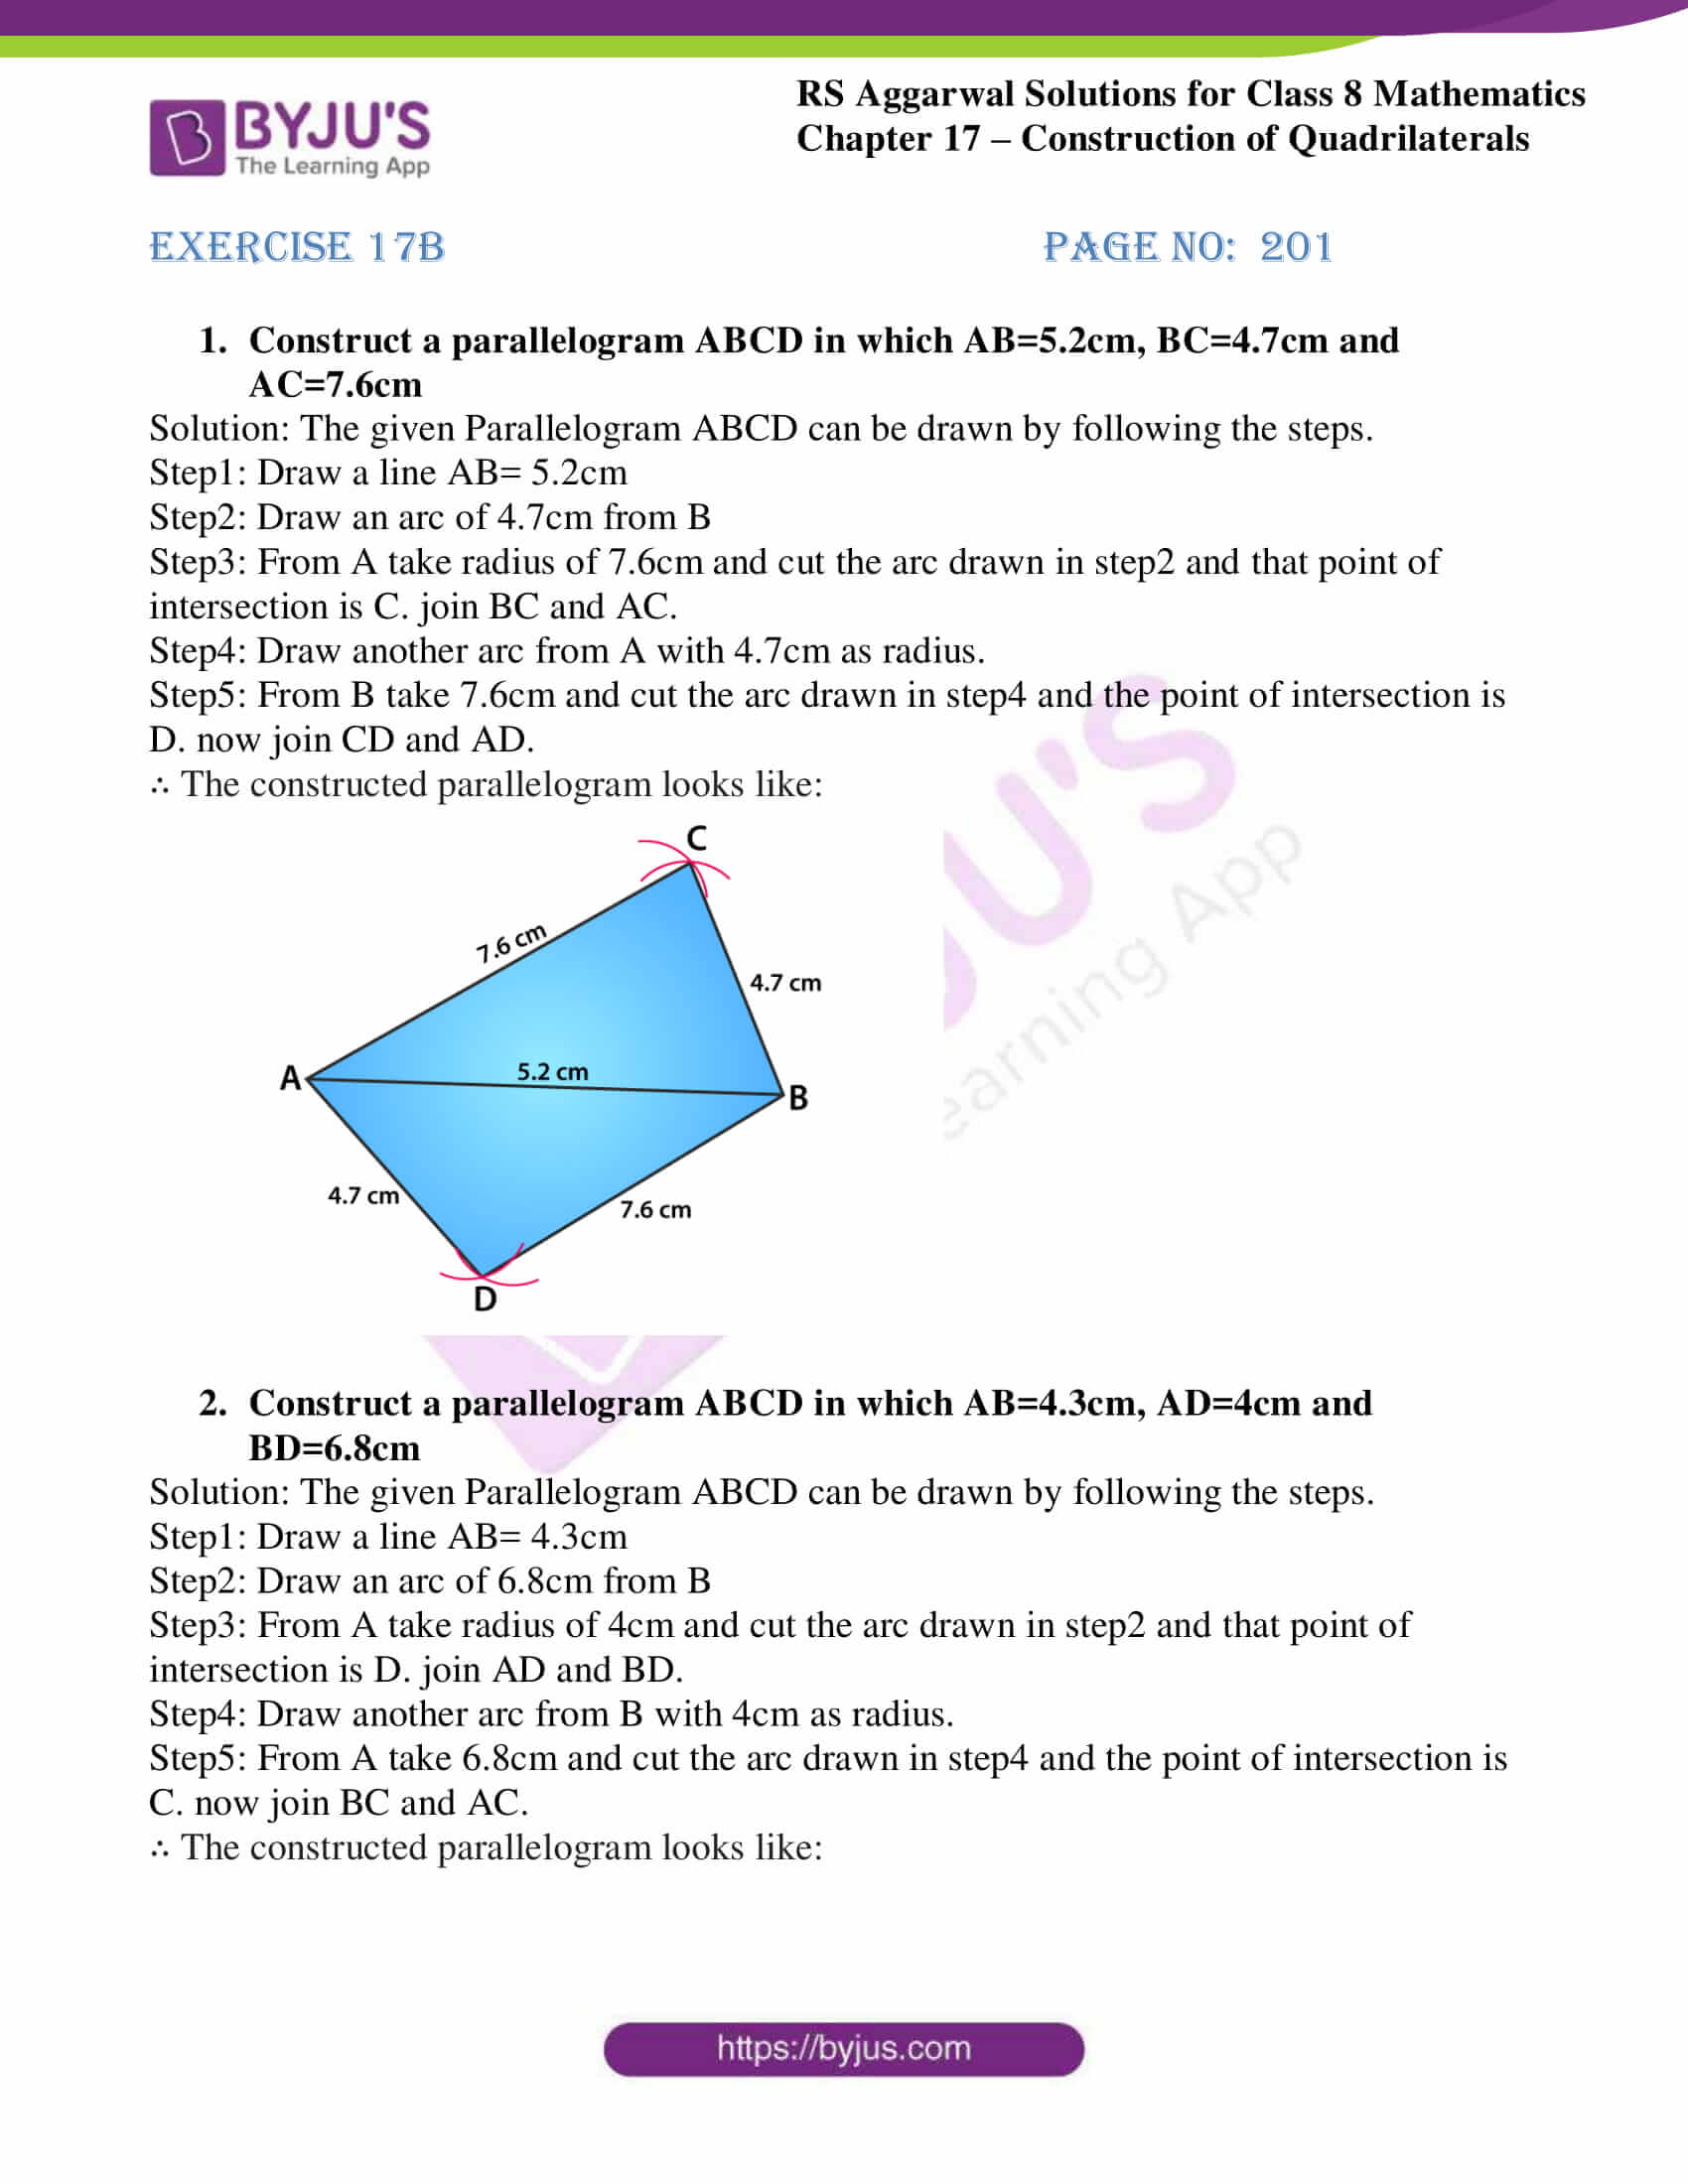 rs aggarwal solutions class 8 maths chapter 17b